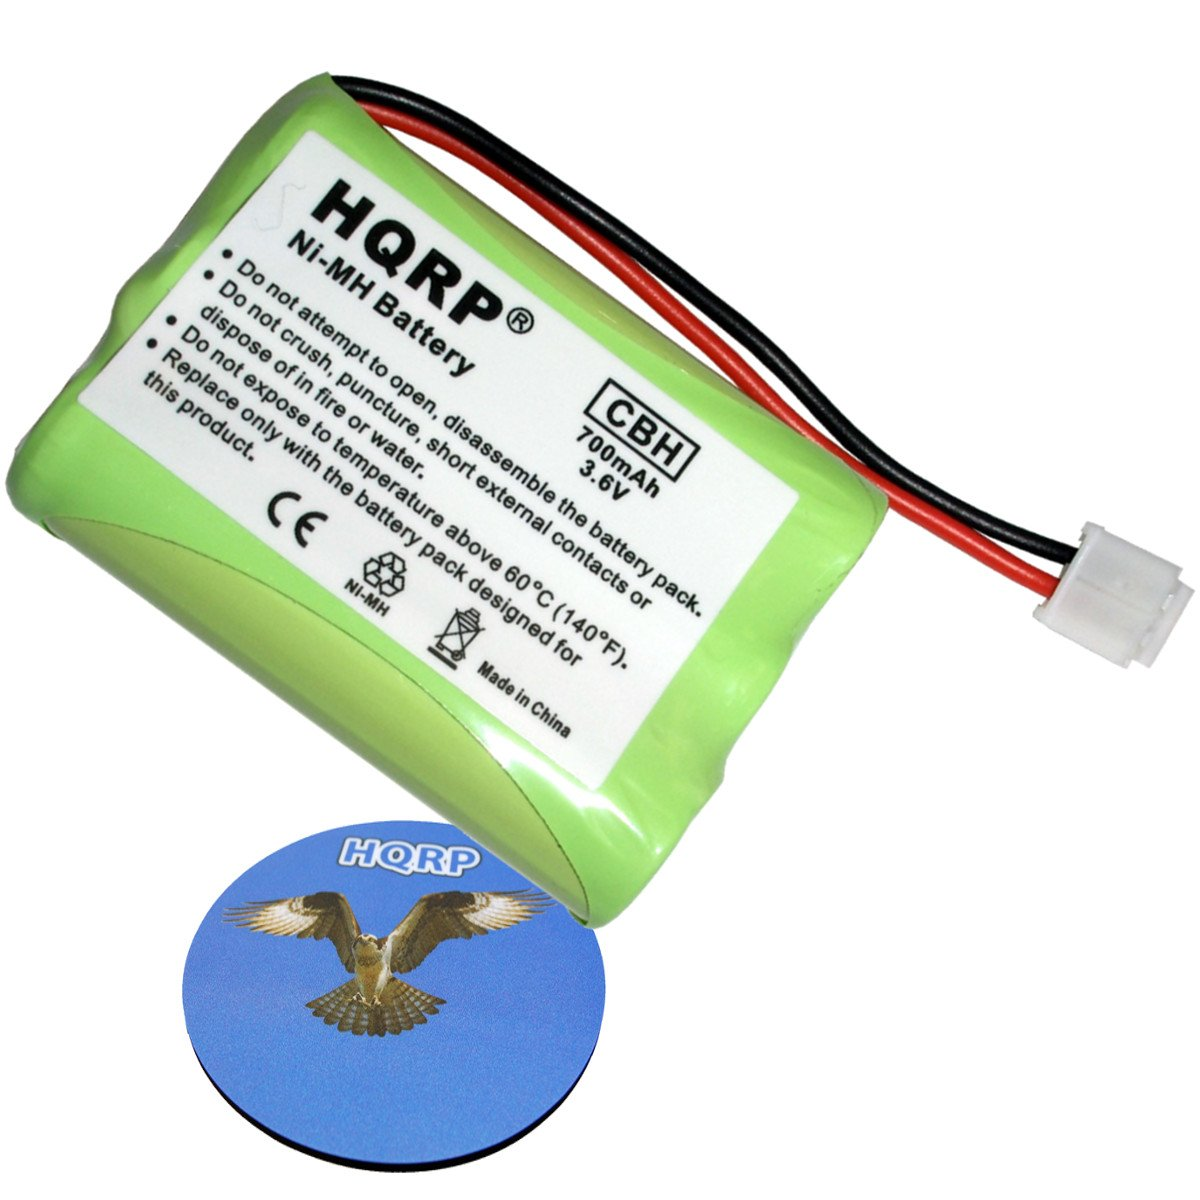 HQRP Phone Battery for General Electric GE 25942, 25952, 25983, 27851, 27906 Cordless Telephone plus Coaster 884667408211041